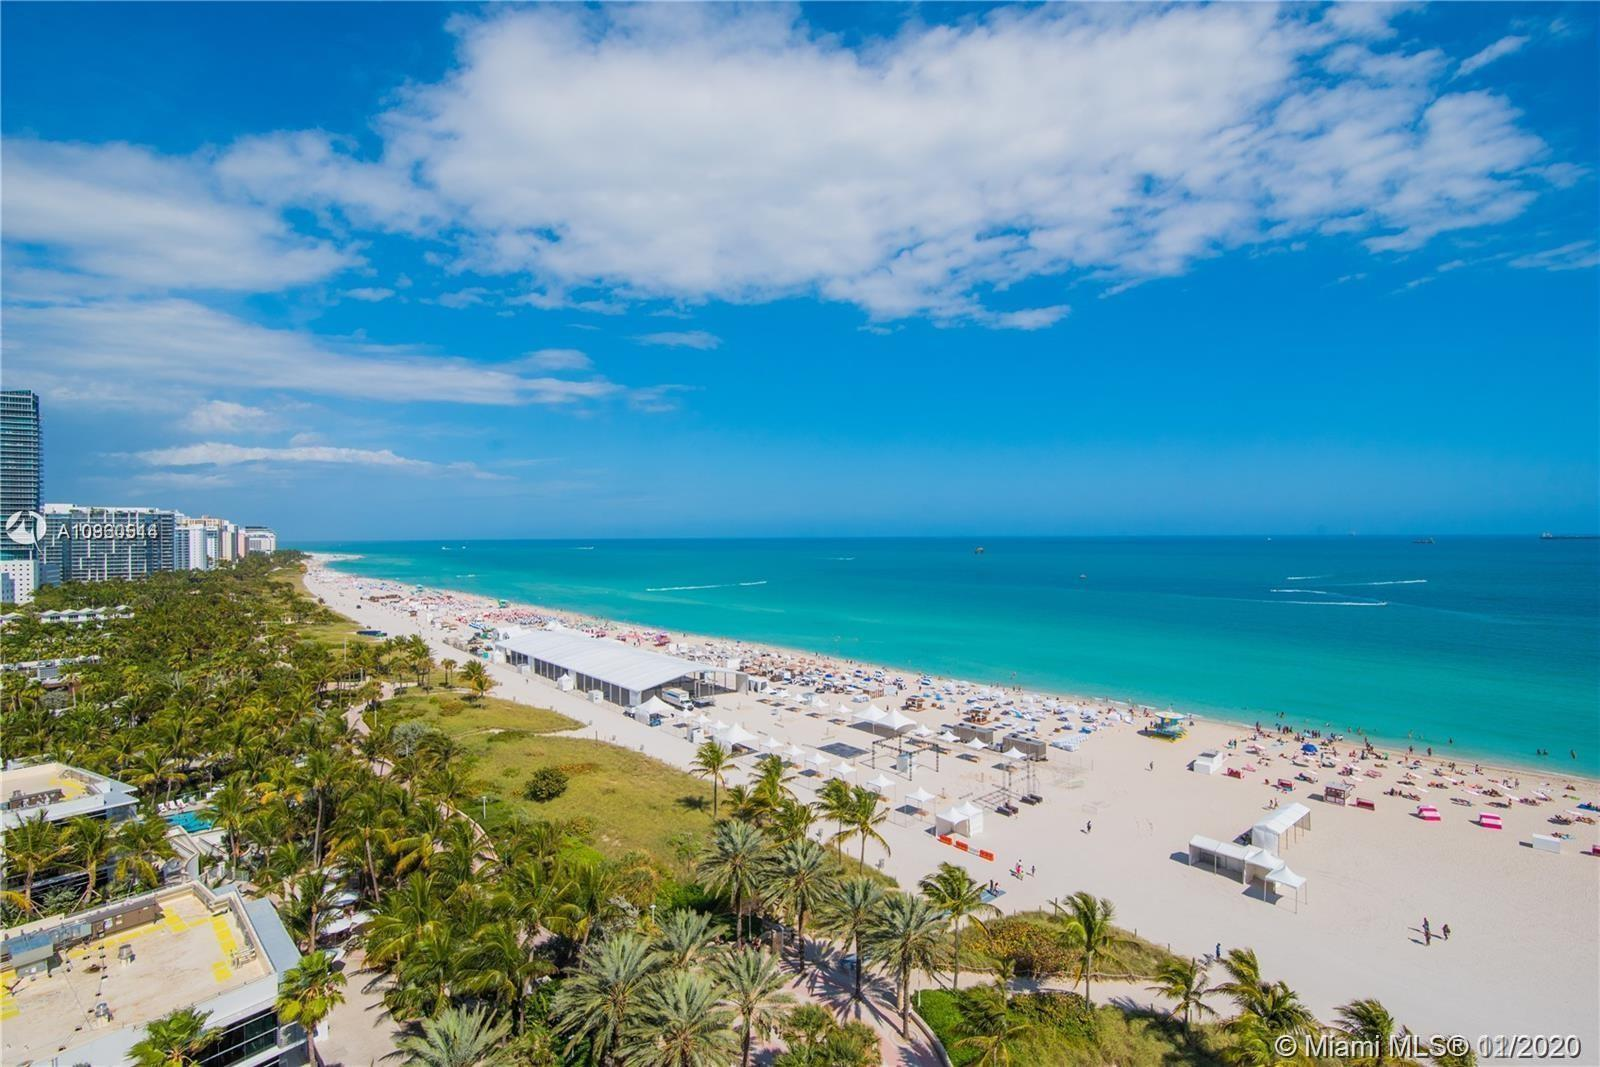 Steps away from the excitement of Lincoln Rd & heart of South Beach restaurants and shops. Ocean fro